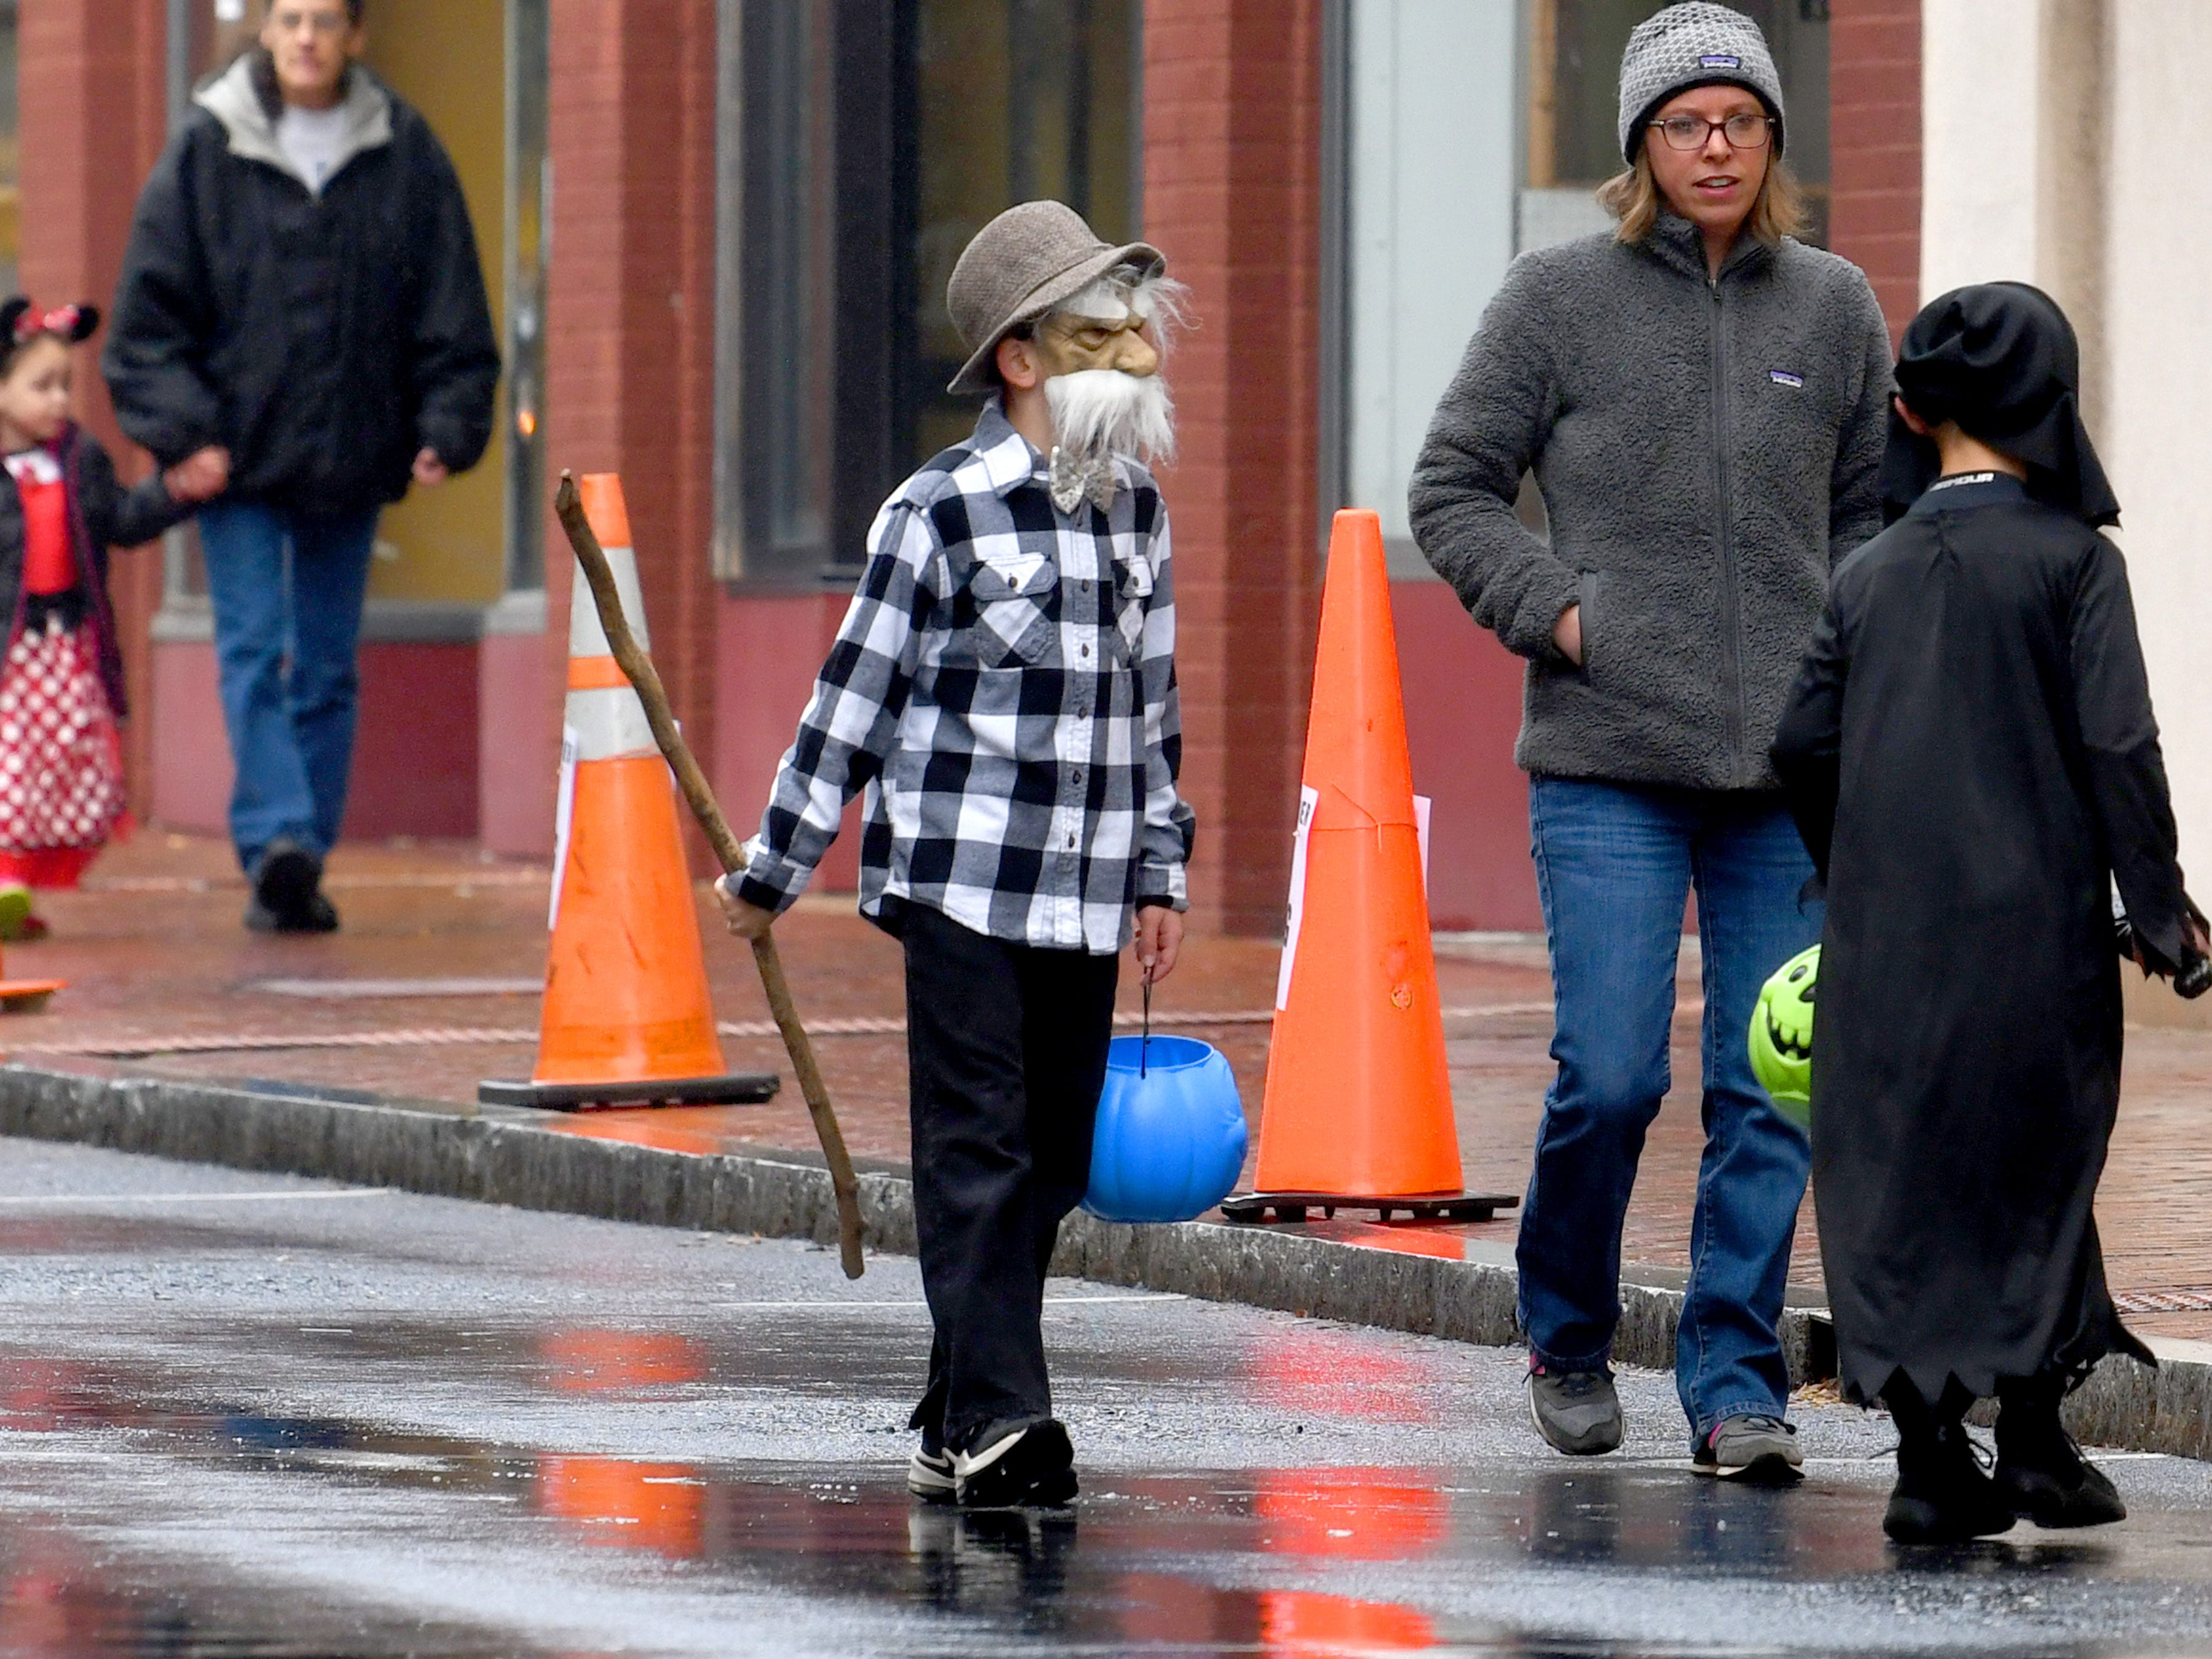 On trick-or-treater finds an old man the perfect costume while trick-or-treating in downtown Staunton on Saturday, Oct. 27, 2018.